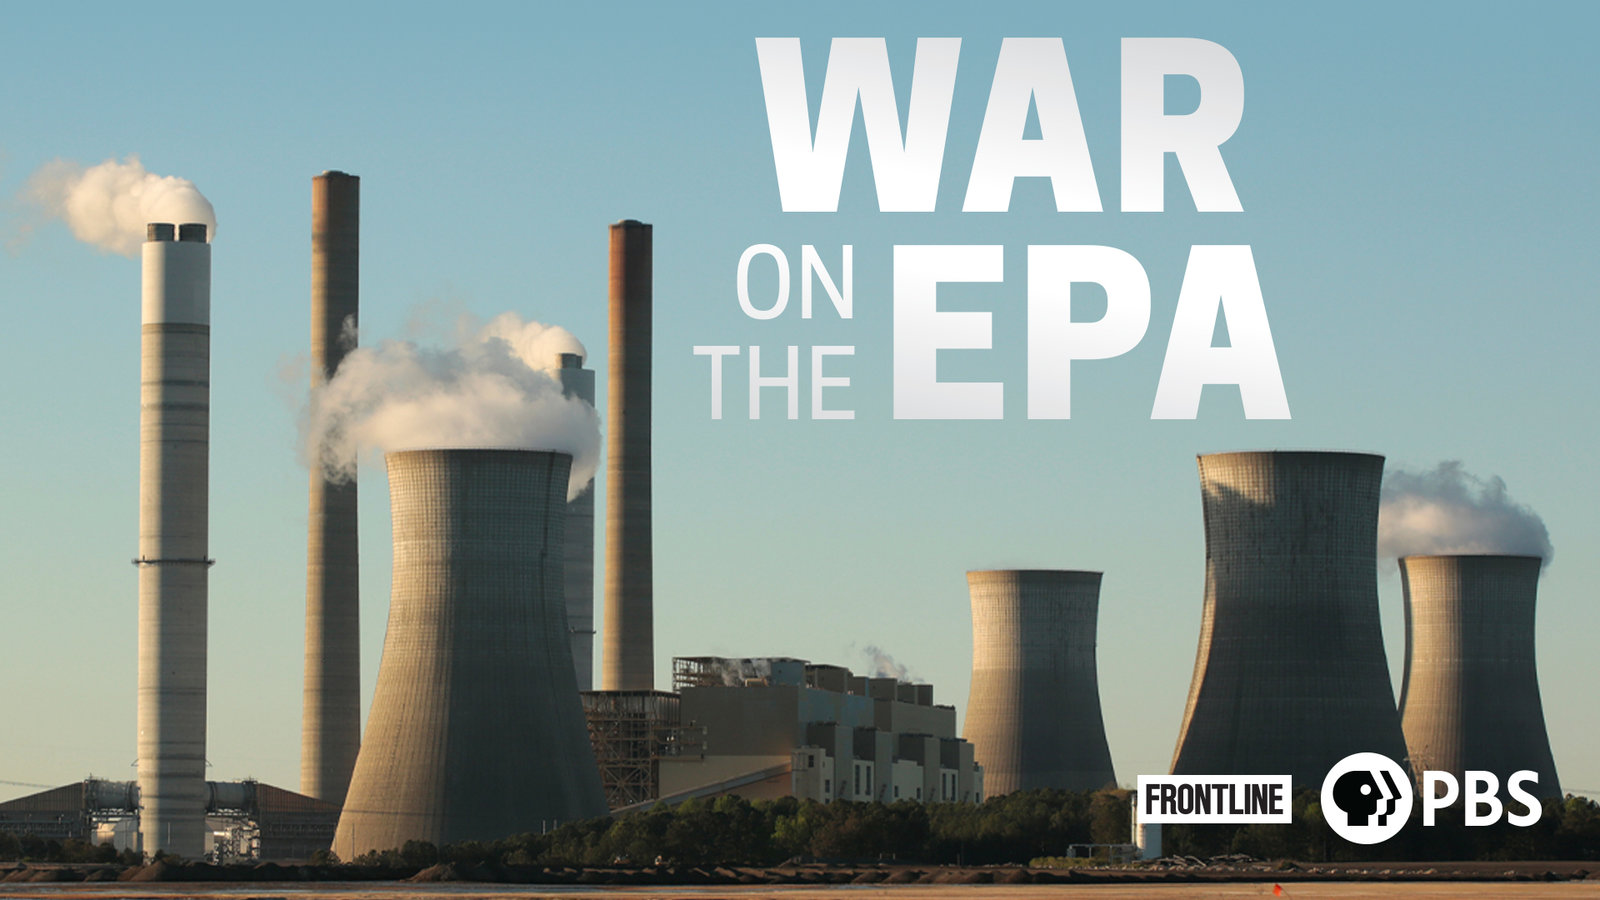 War on the EPA